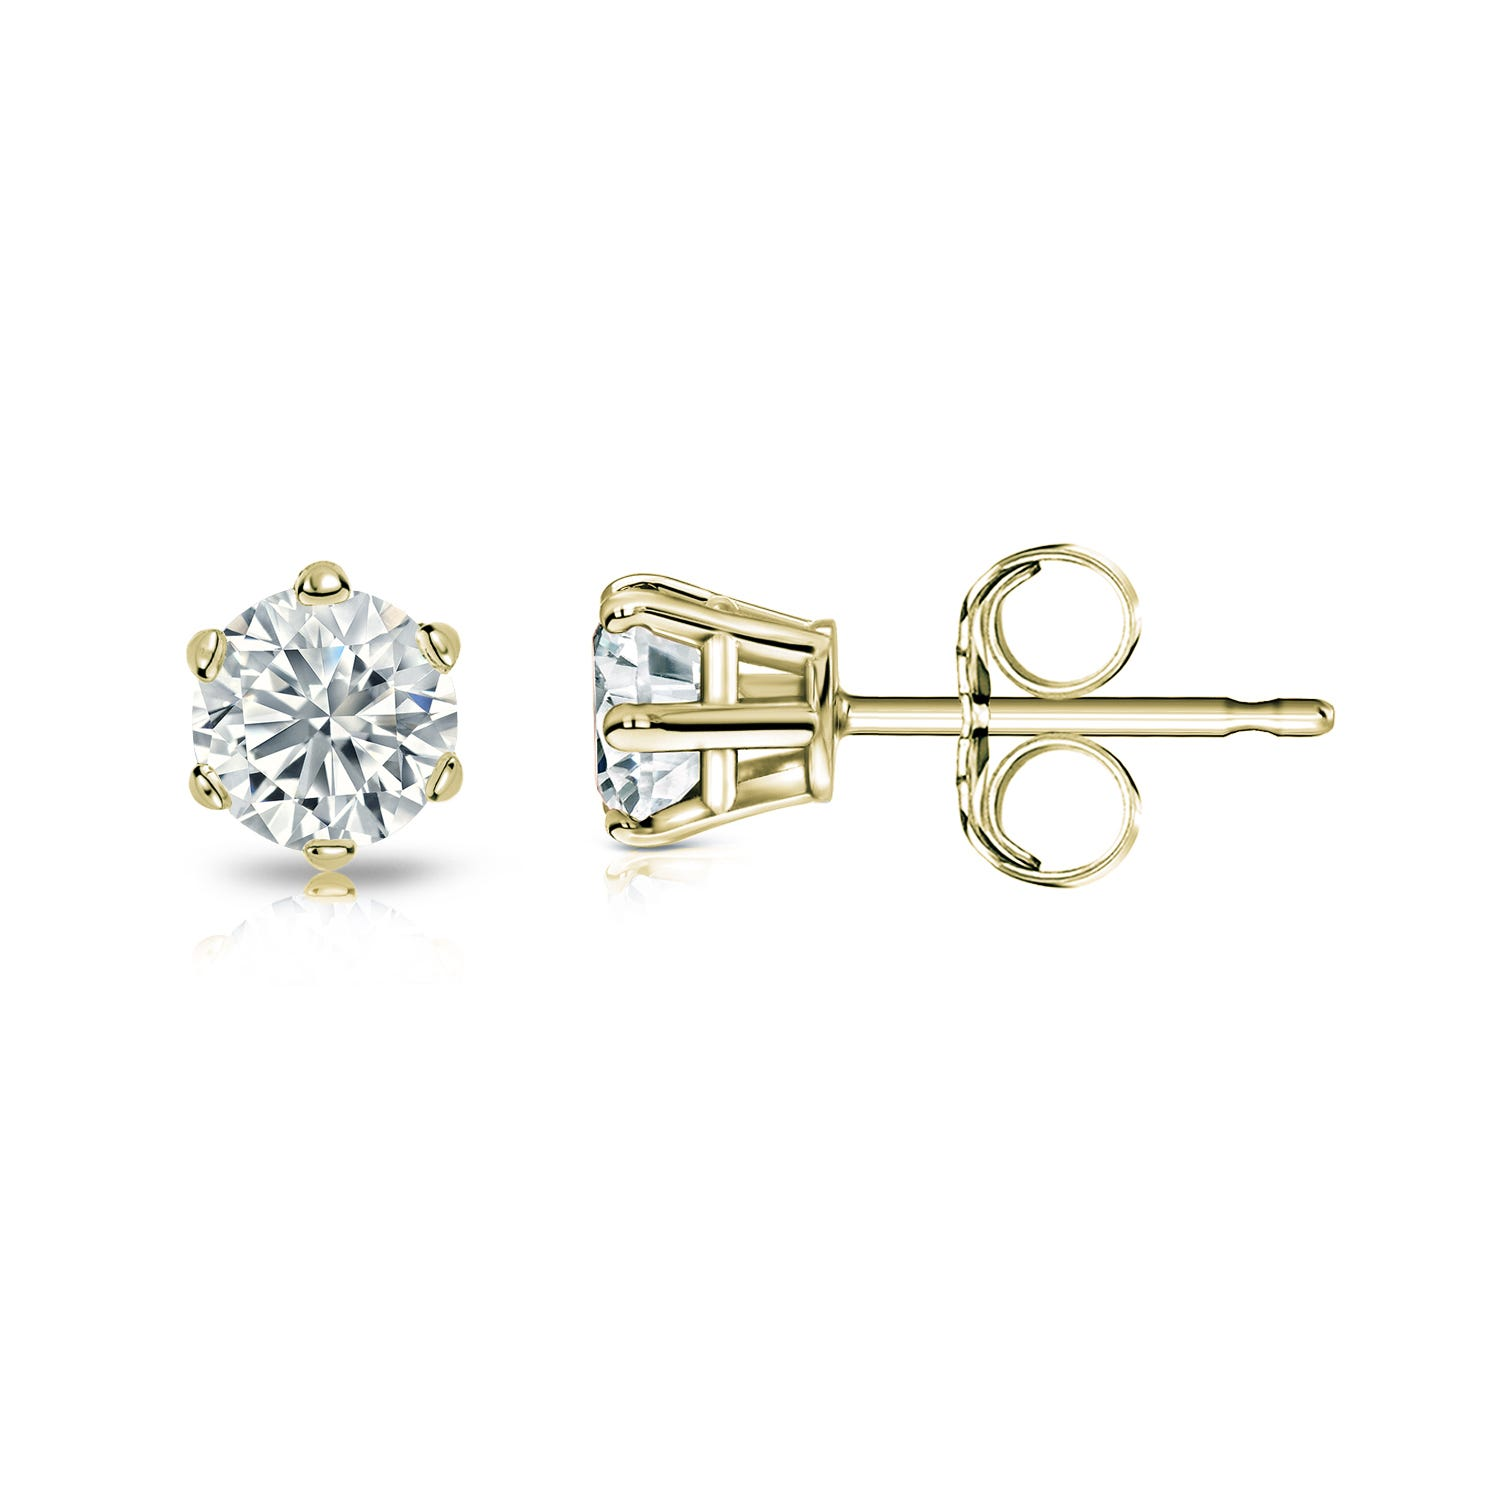 Round Diamond 1/4ctw. (IJ-I2) Solitaire Stud 6-Prong Earrings in 10K Yellow Gold